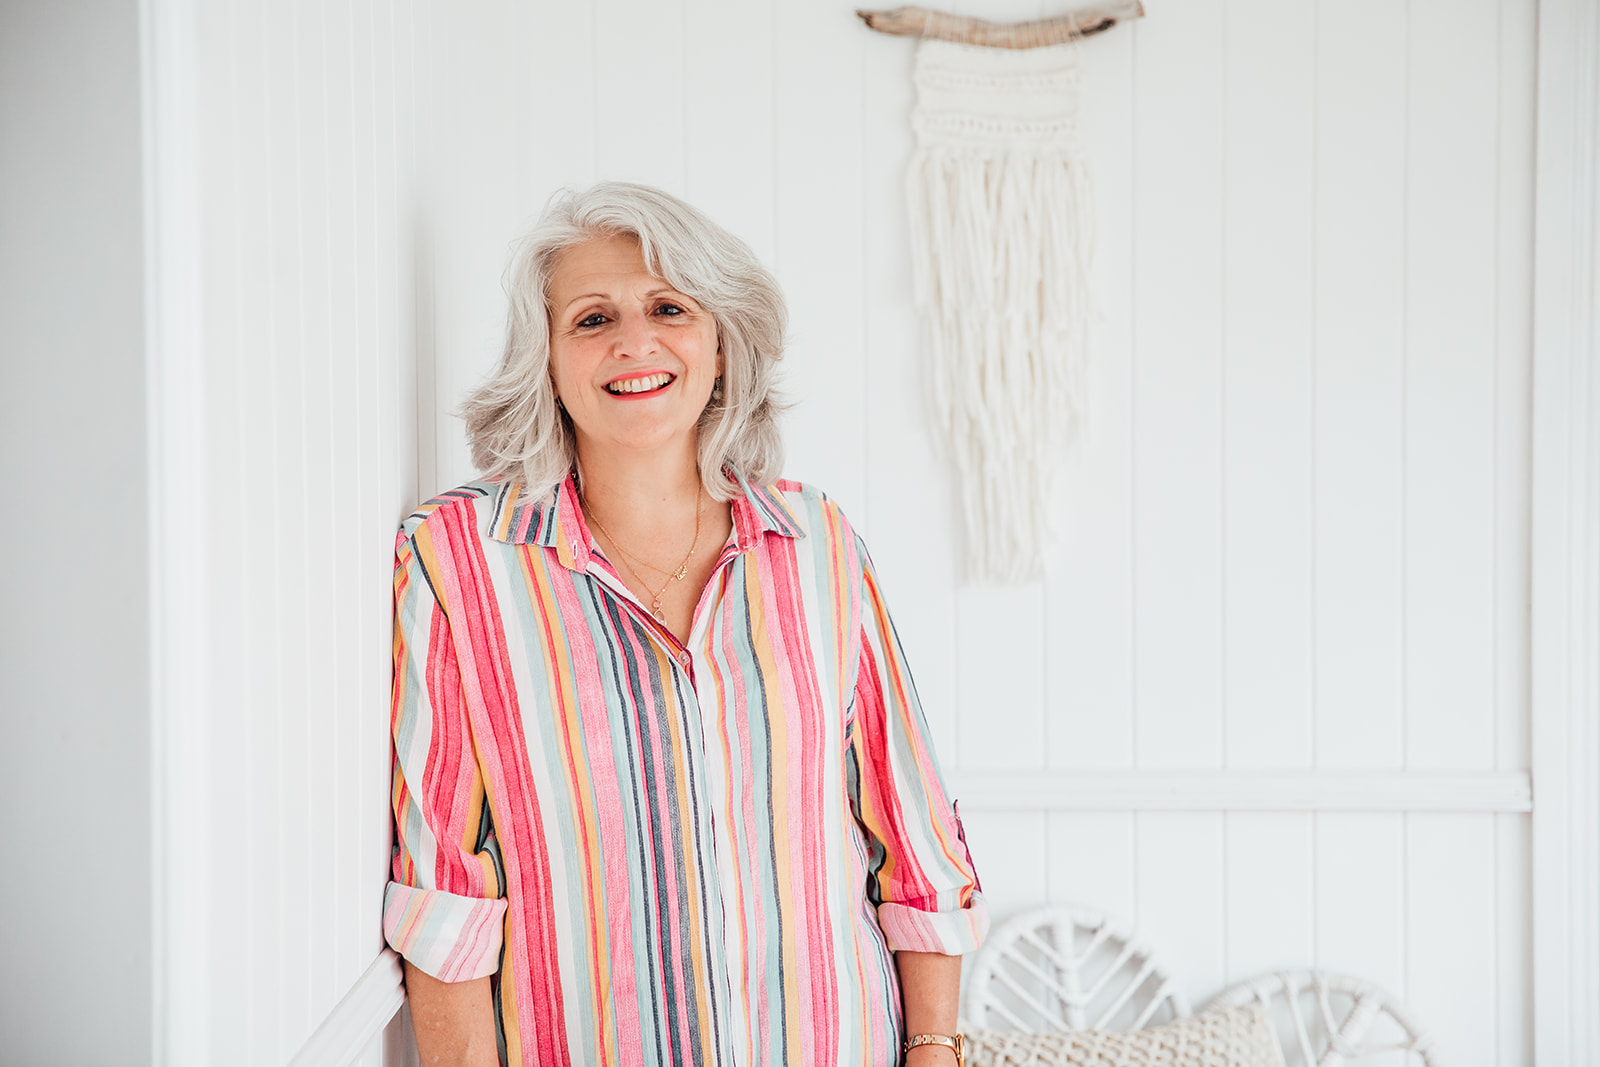 The Energy Workz Podcast with Tanya Ormsby - Episode #75: Relationships Without Tentacles